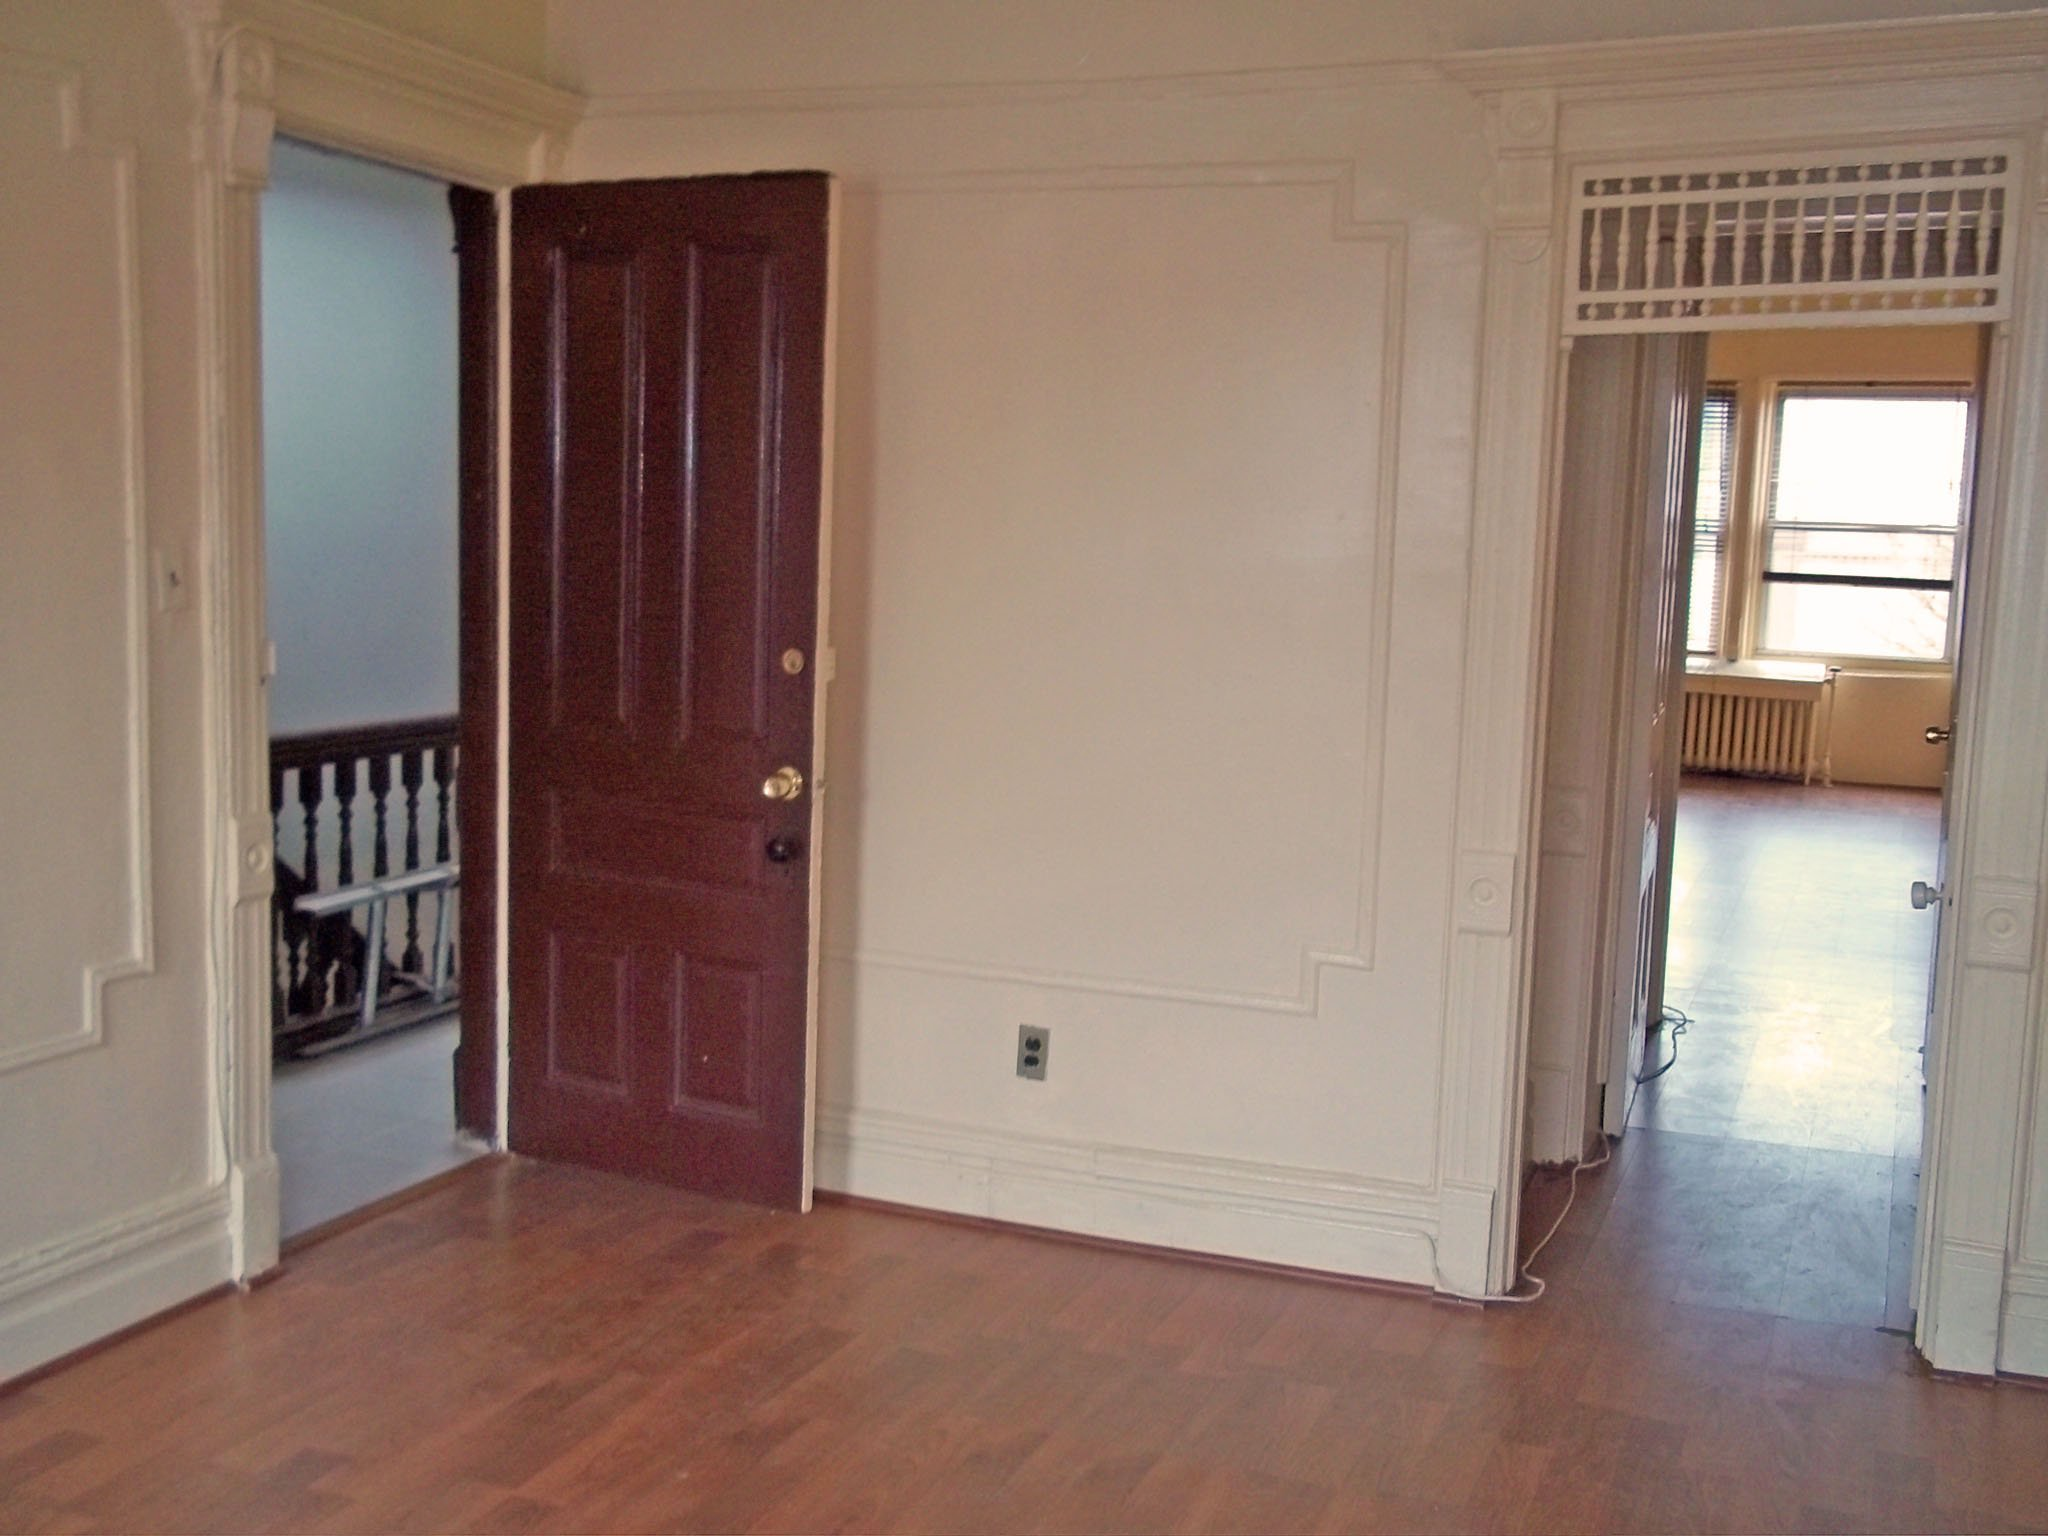 Best Bedford Stuyvesant 1 Bedroom Apartment For Rent Brooklyn With Pictures